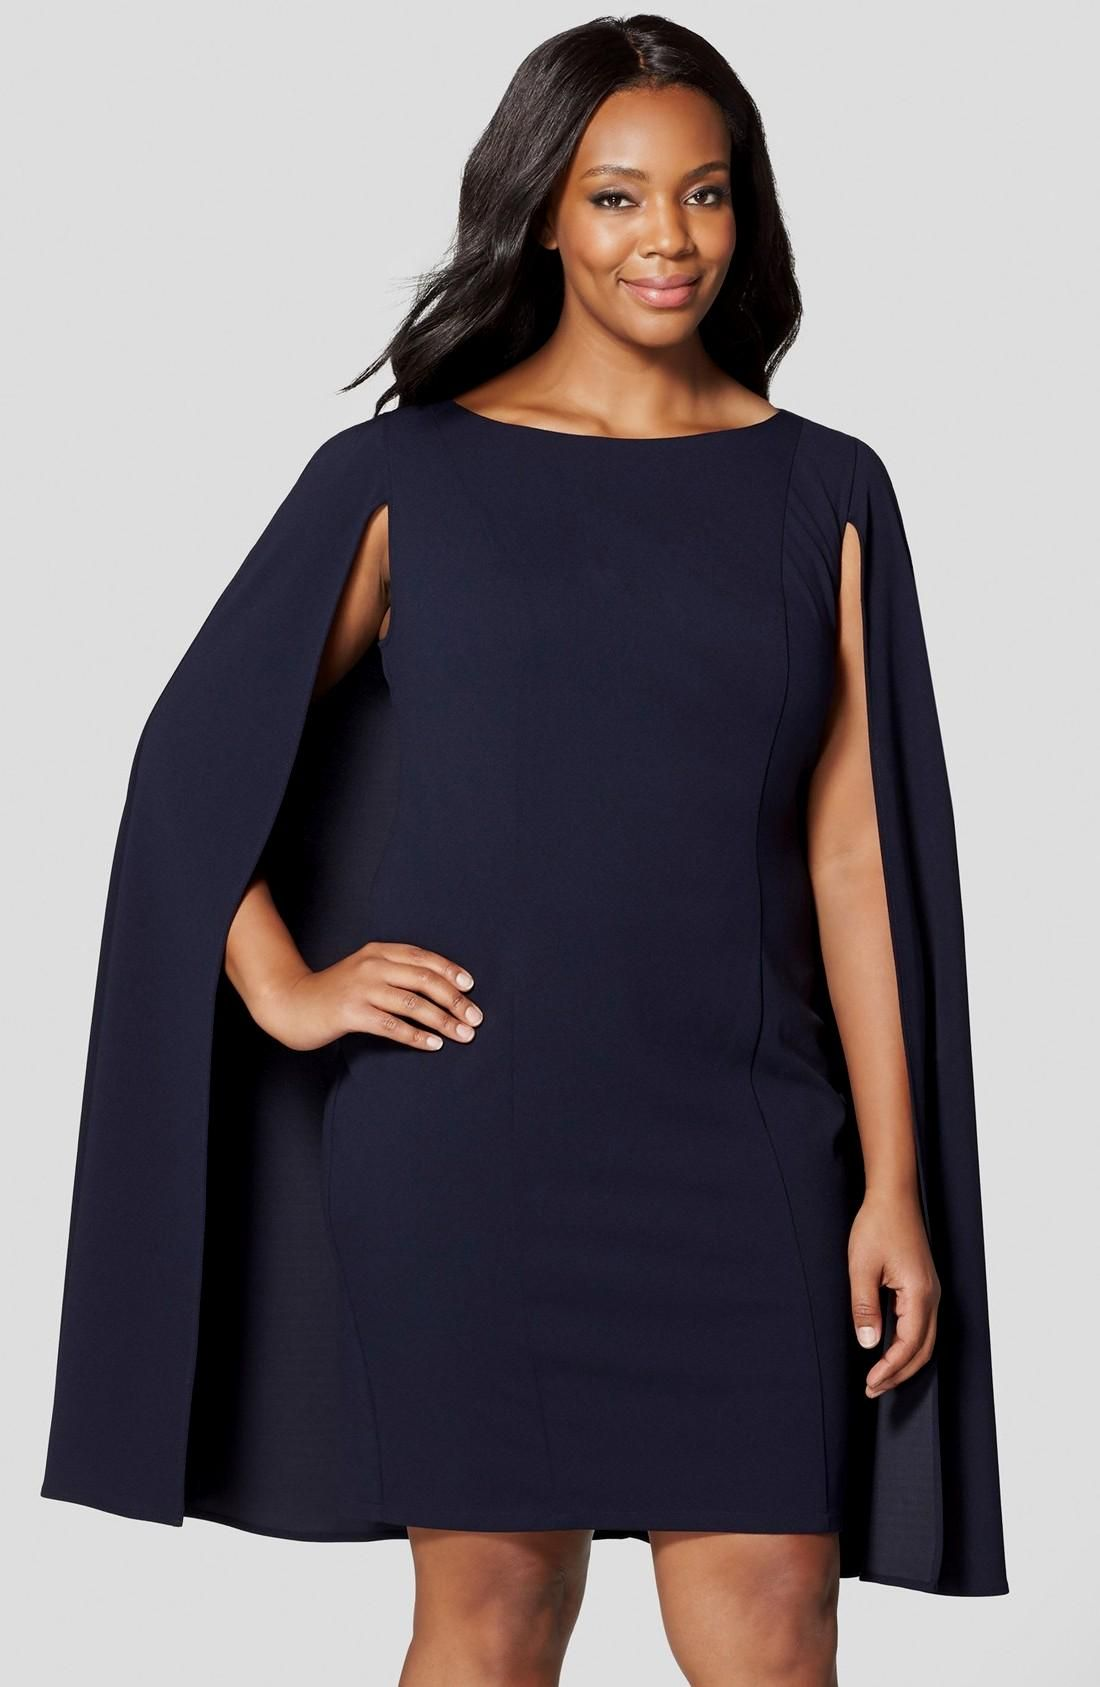 Nordstrom Plus Size Cocktail Dresses